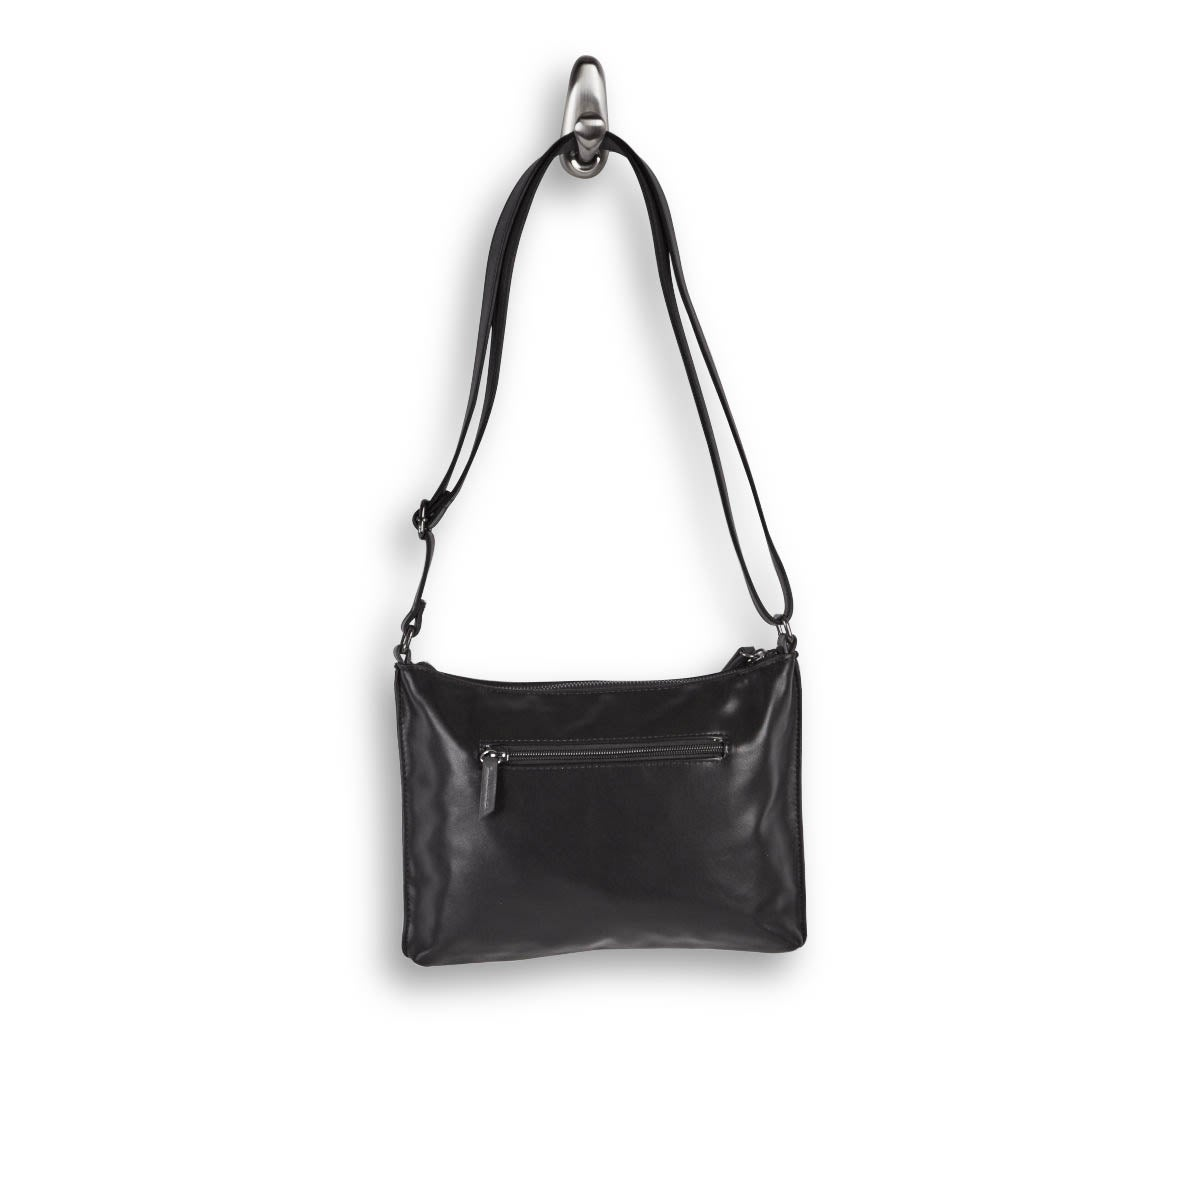 Lds Roots73 blk top zip crossbody